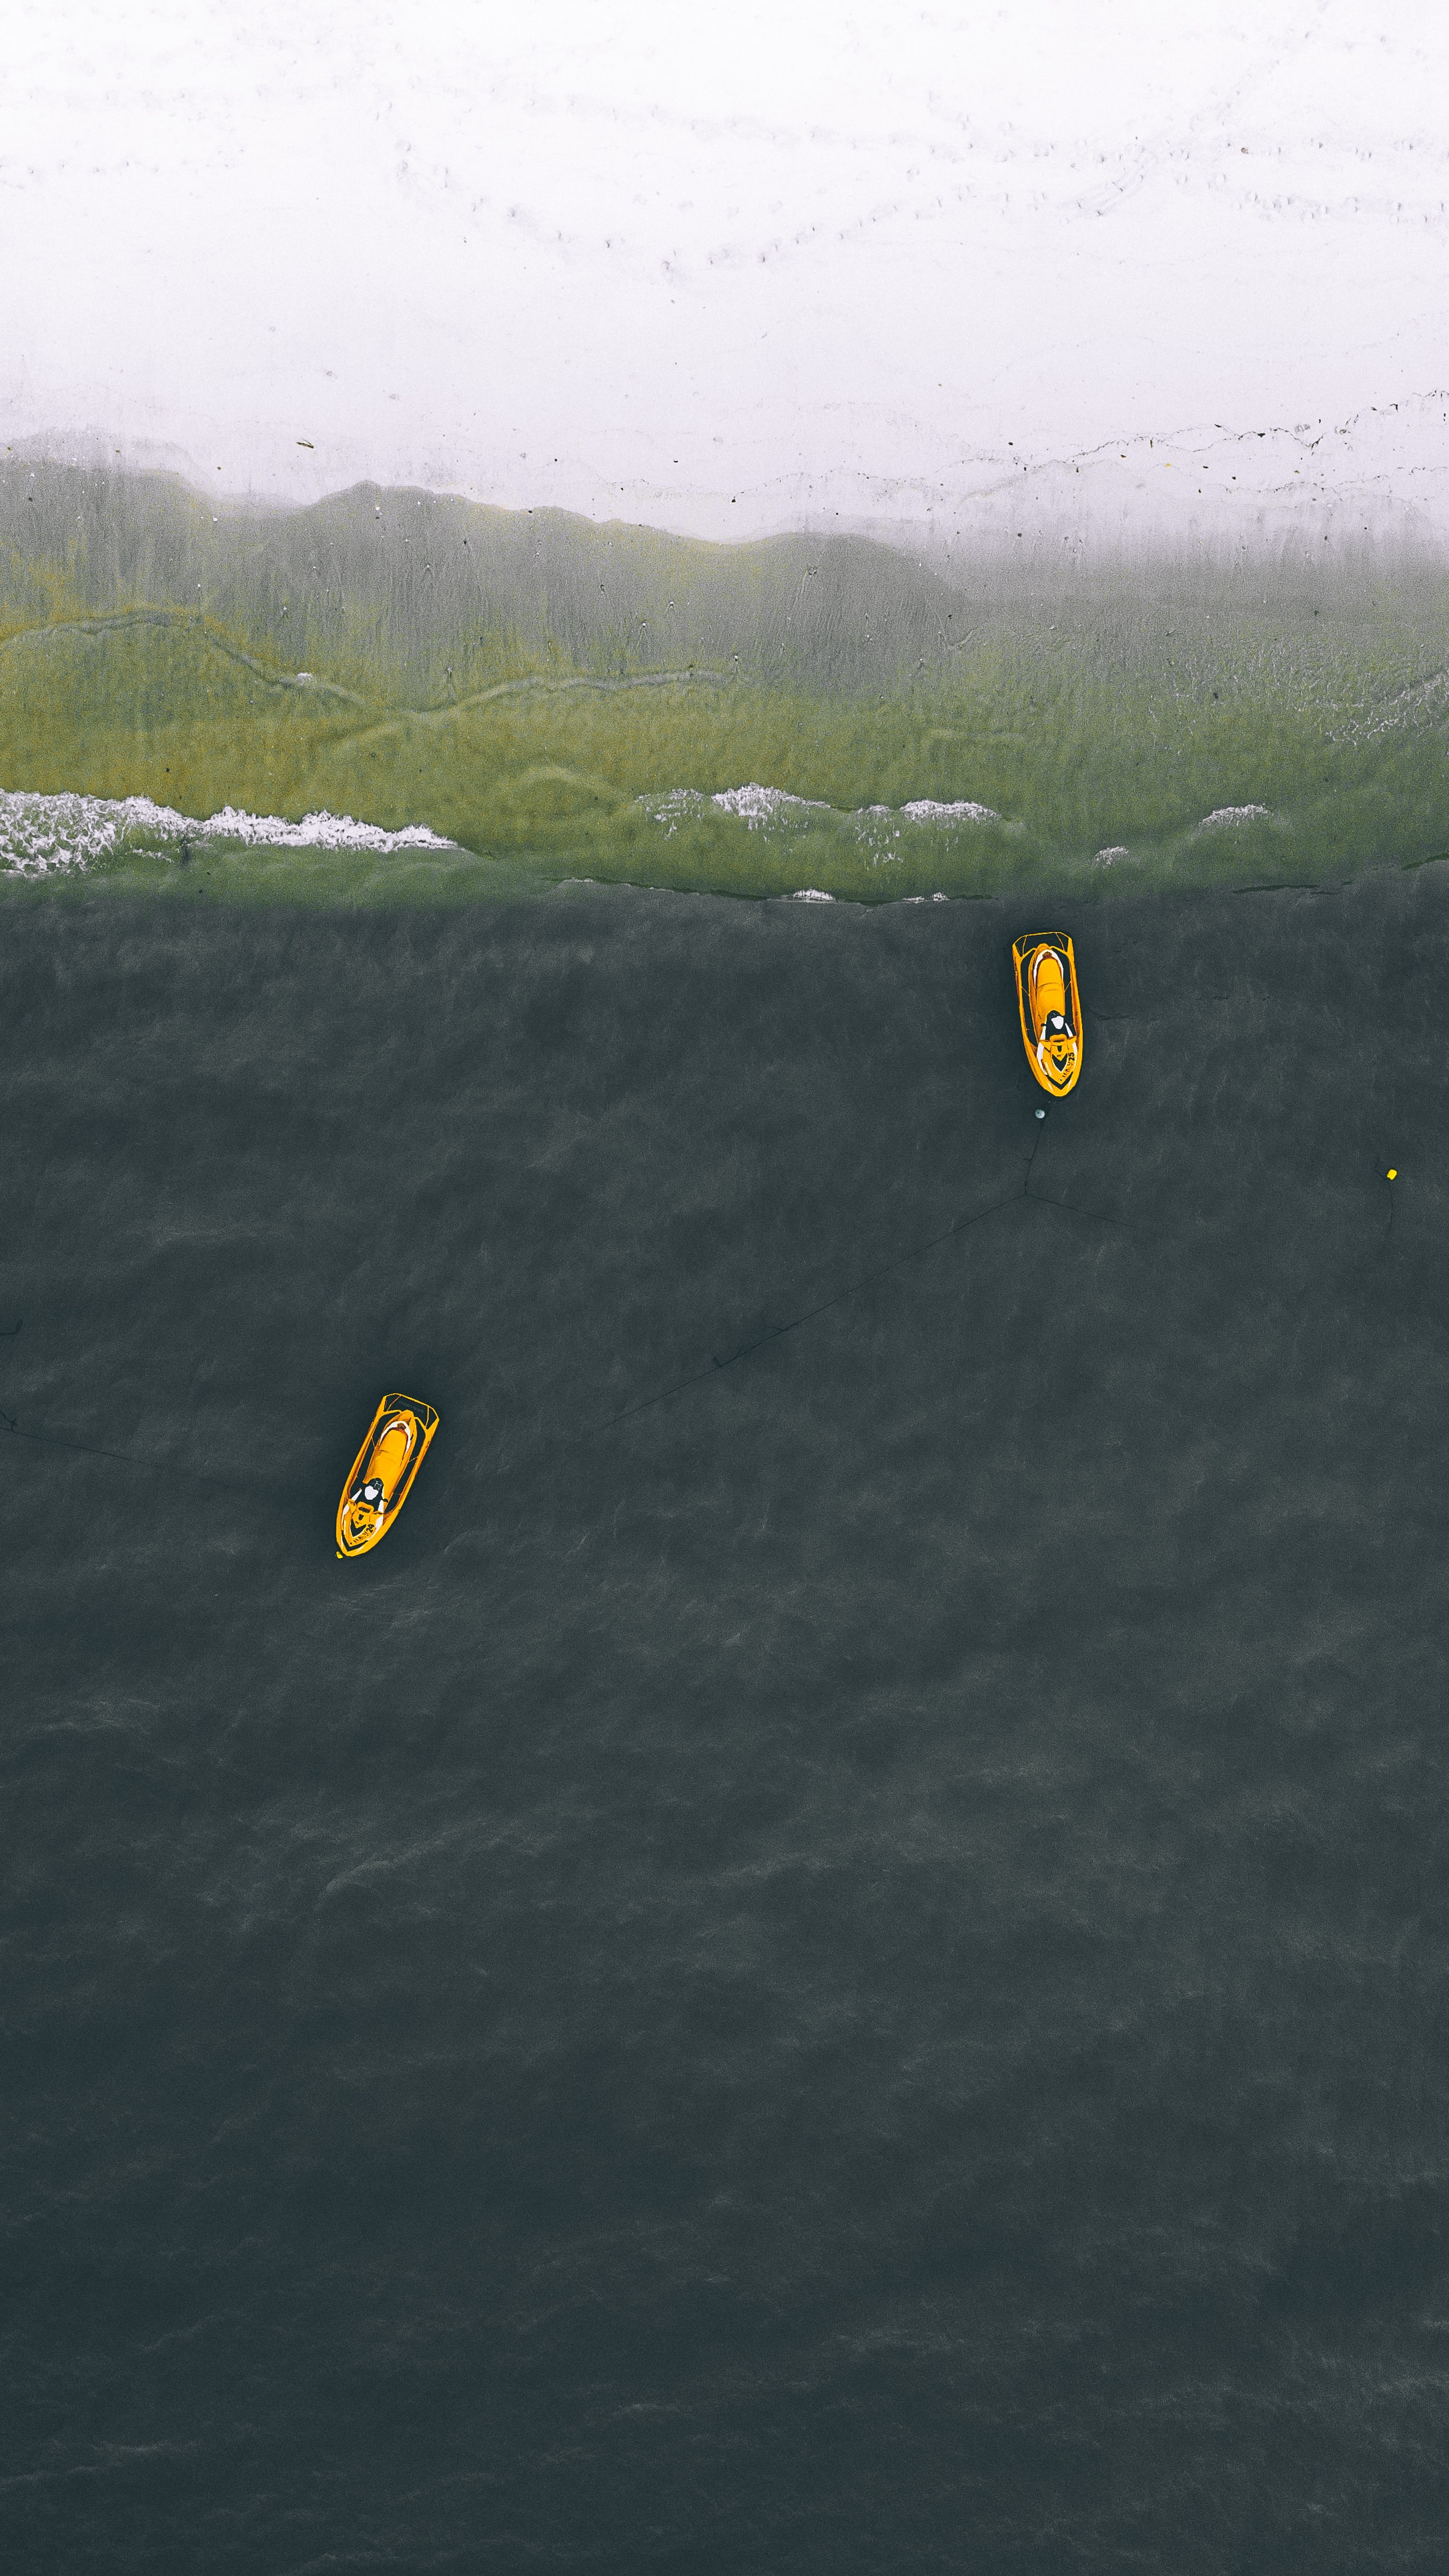 two yellow personal watercraft on water